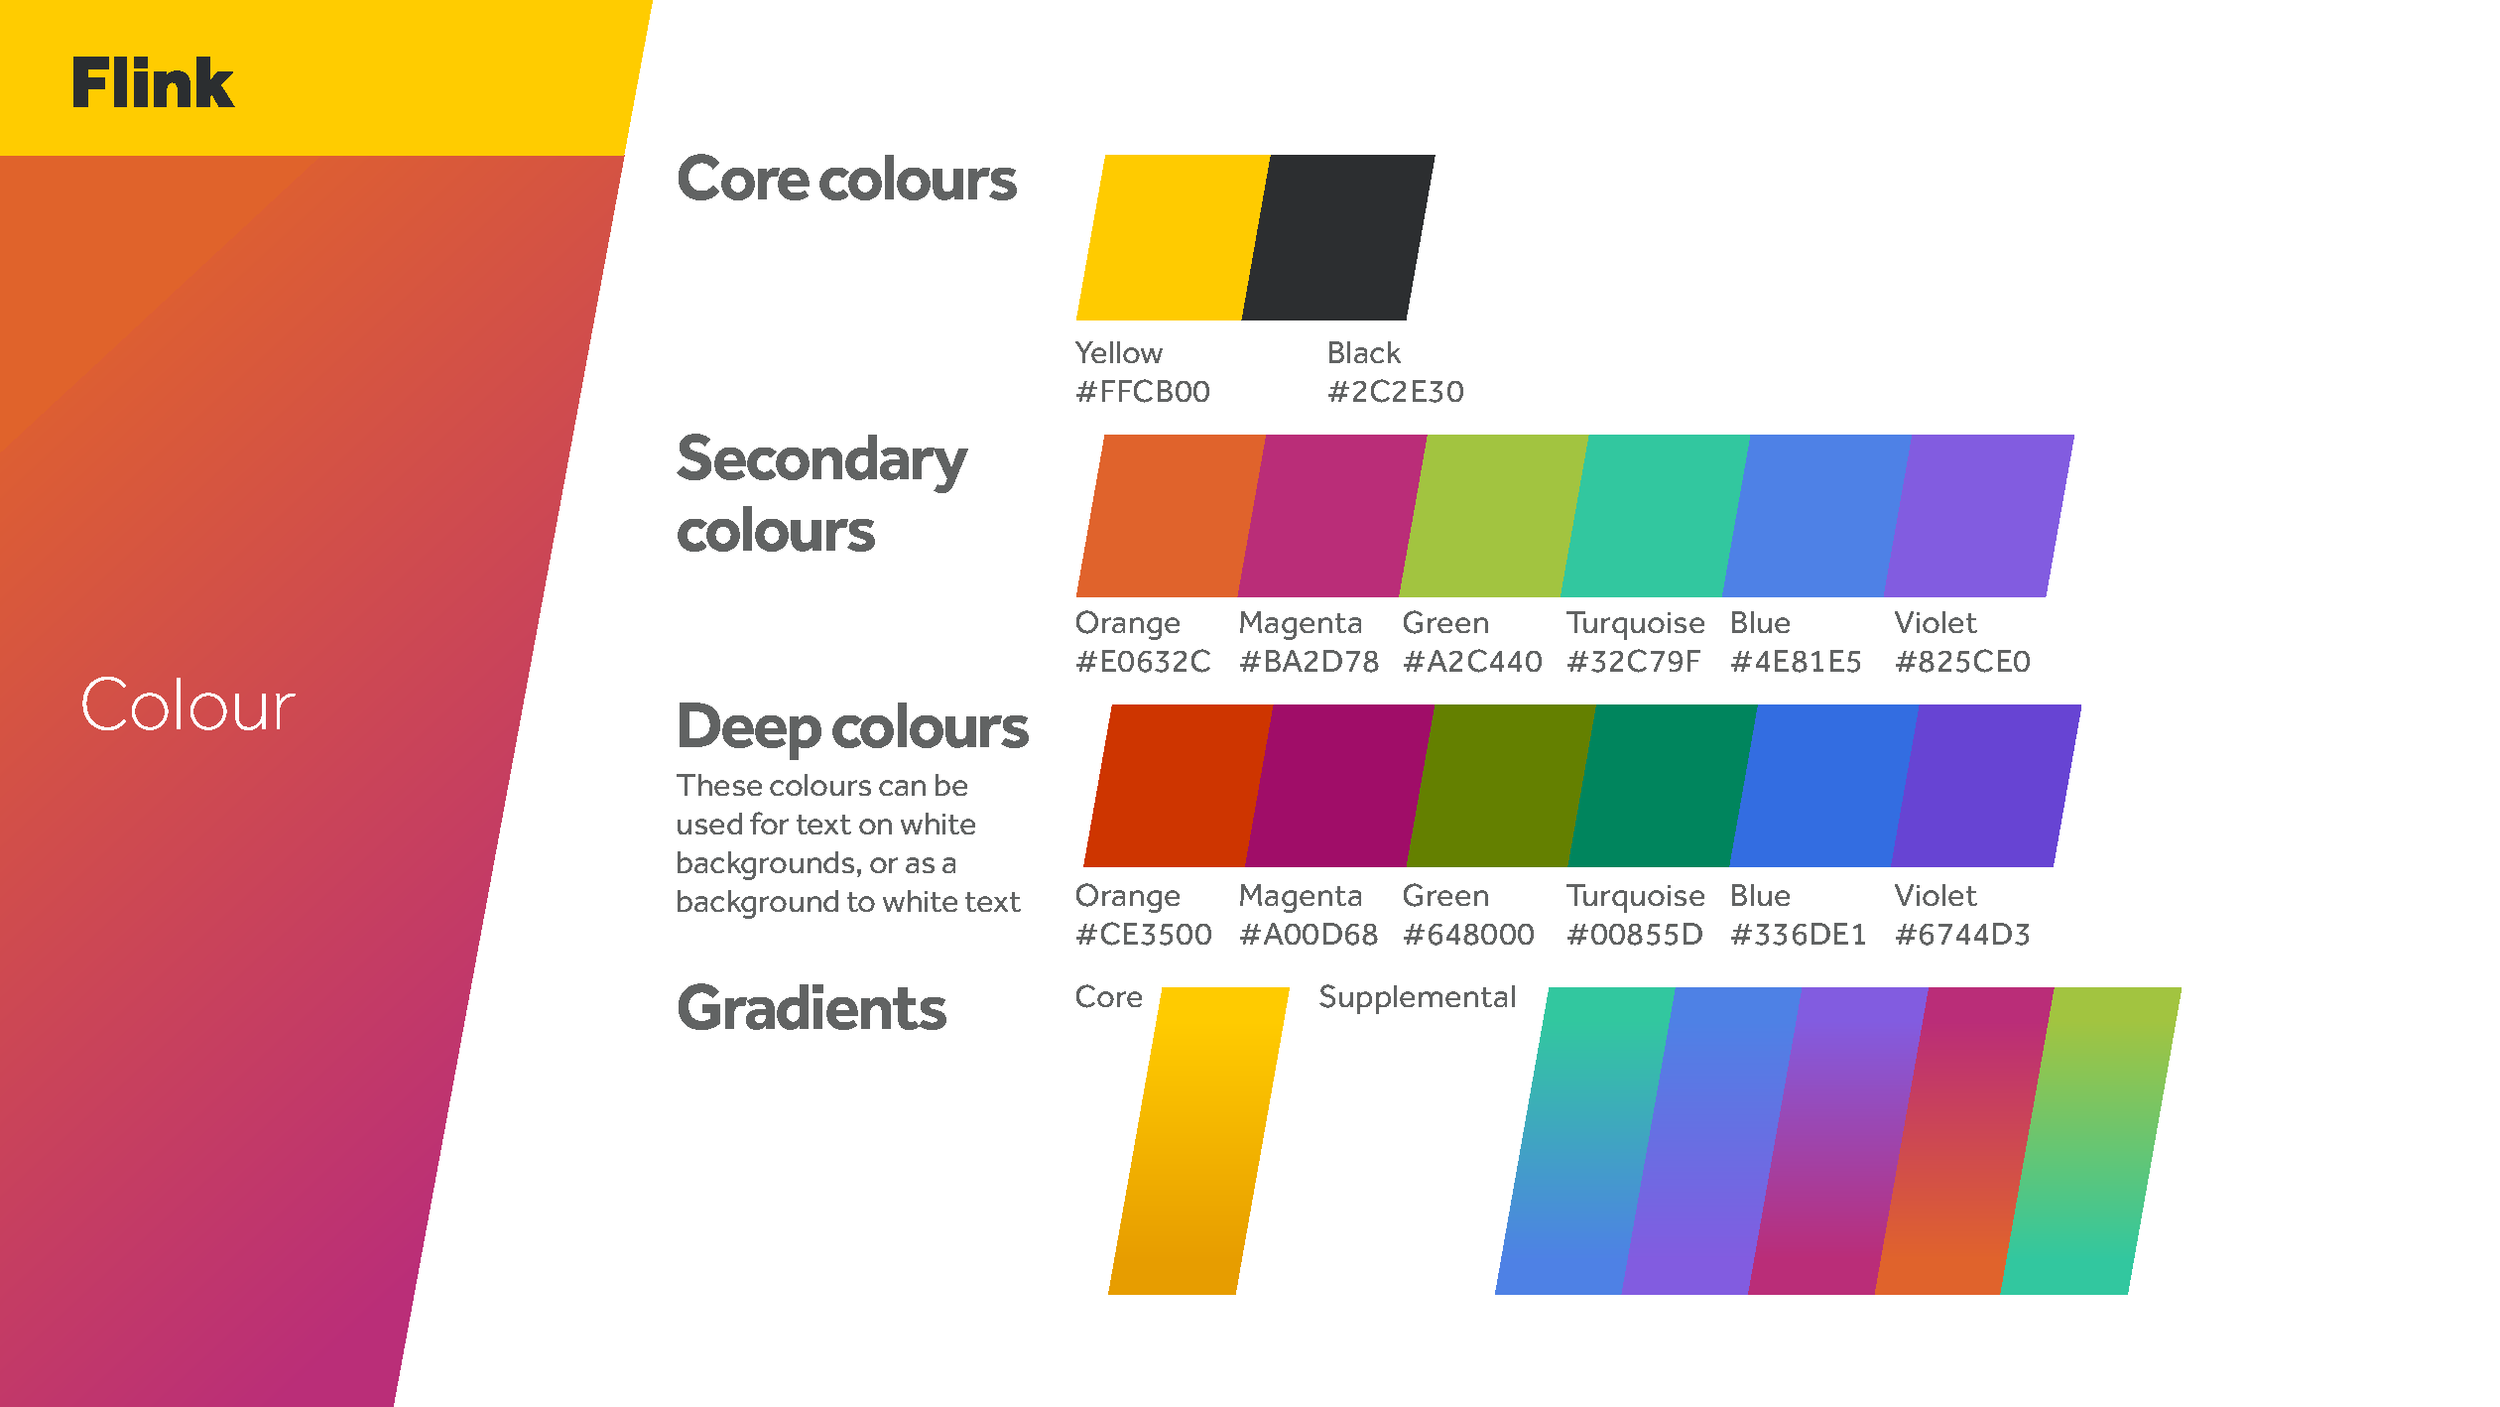 SS1266 Flink Instagram style guide_Page_03.png